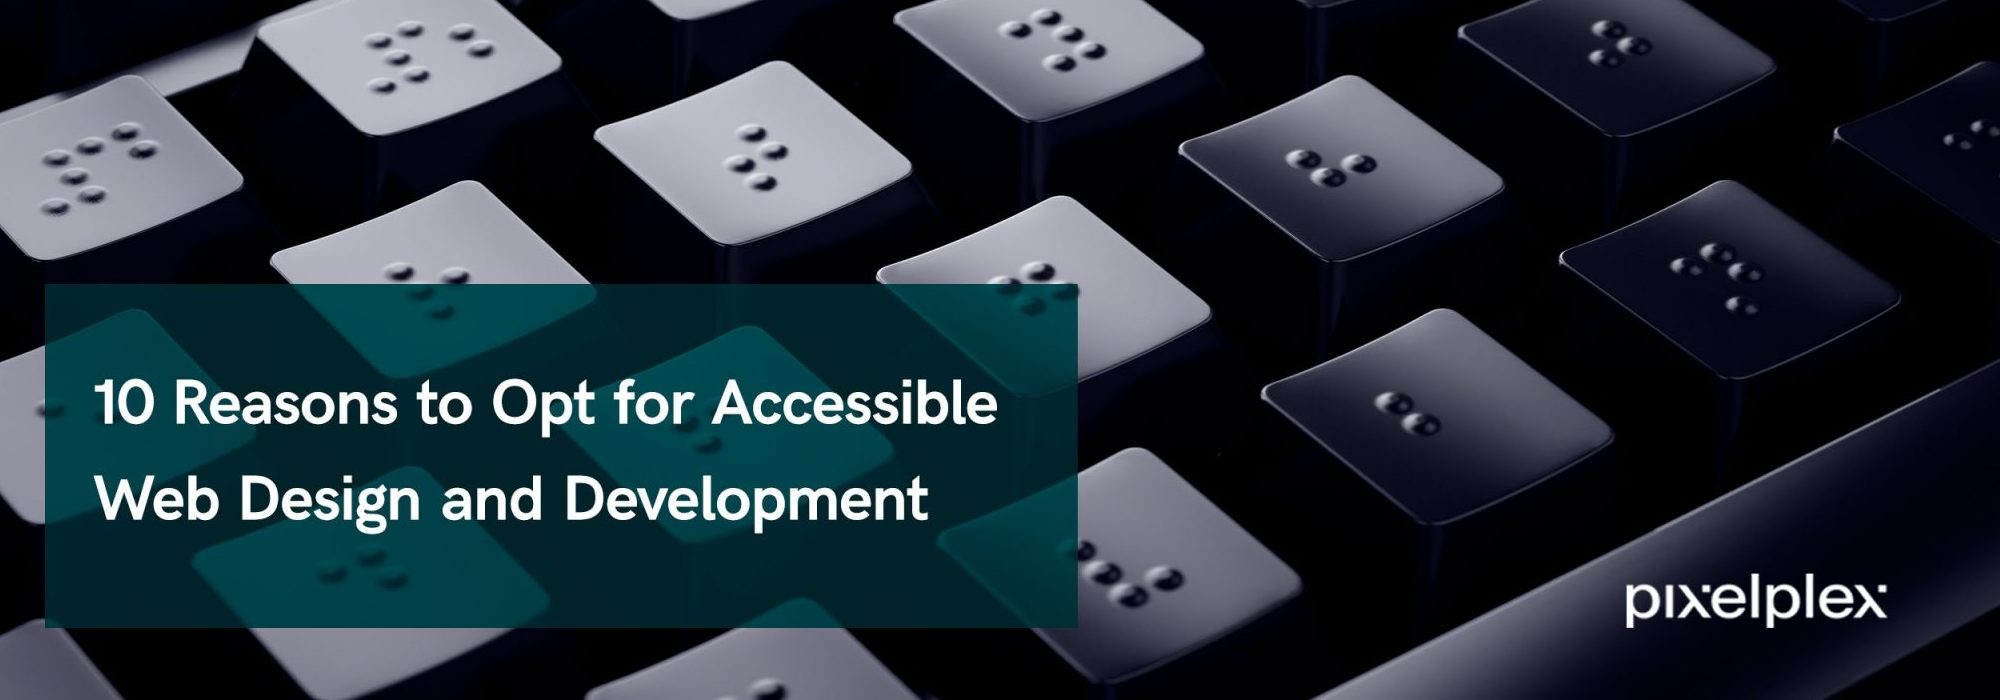 reasons-to-opt-for-accessible-web-design-and-development